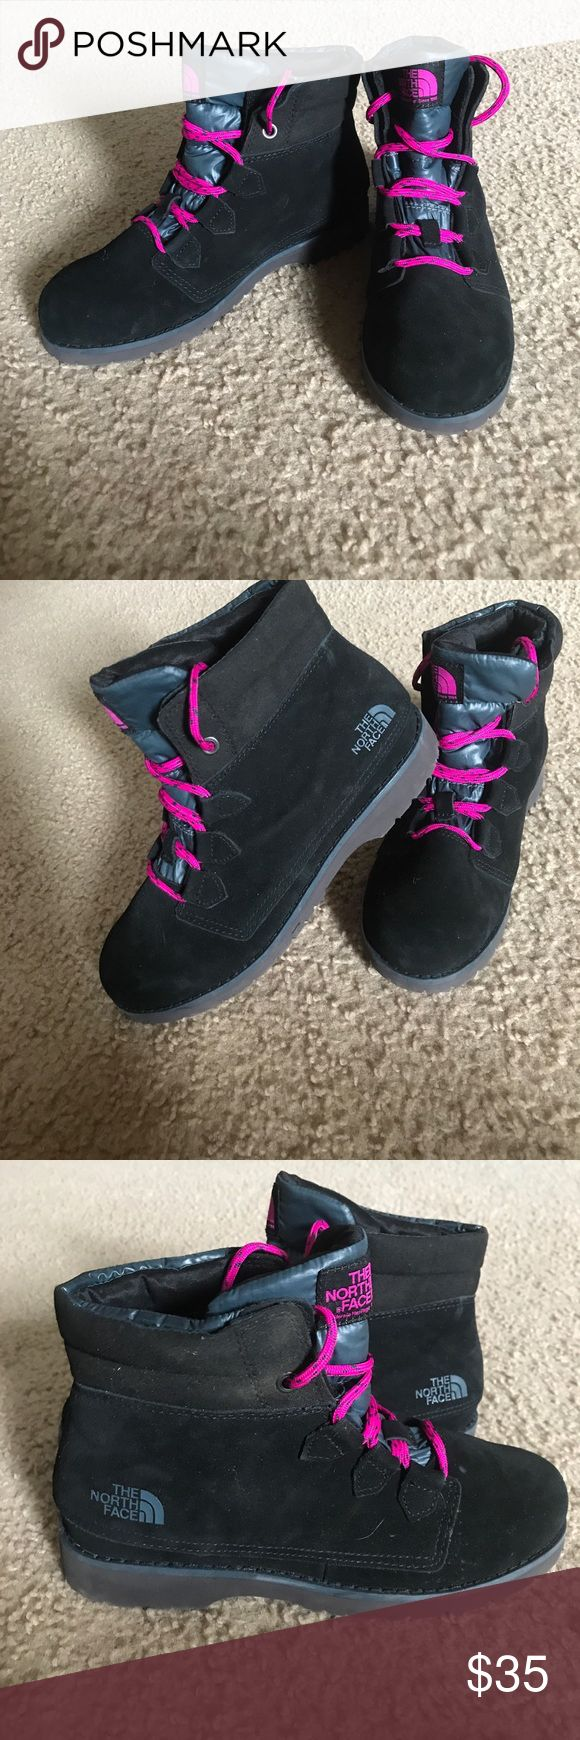 North Face Snow Boots Black North Face Snow Boots with pink laces. Only worn once for an hour, still in fabulous condition!! Basically look brand new! Size 7 in women's, true to size. Have thermal covering inside to keep your feet warm and have great soles to prevent you falling on ice. North Face Shoes Winter & Rain Boots